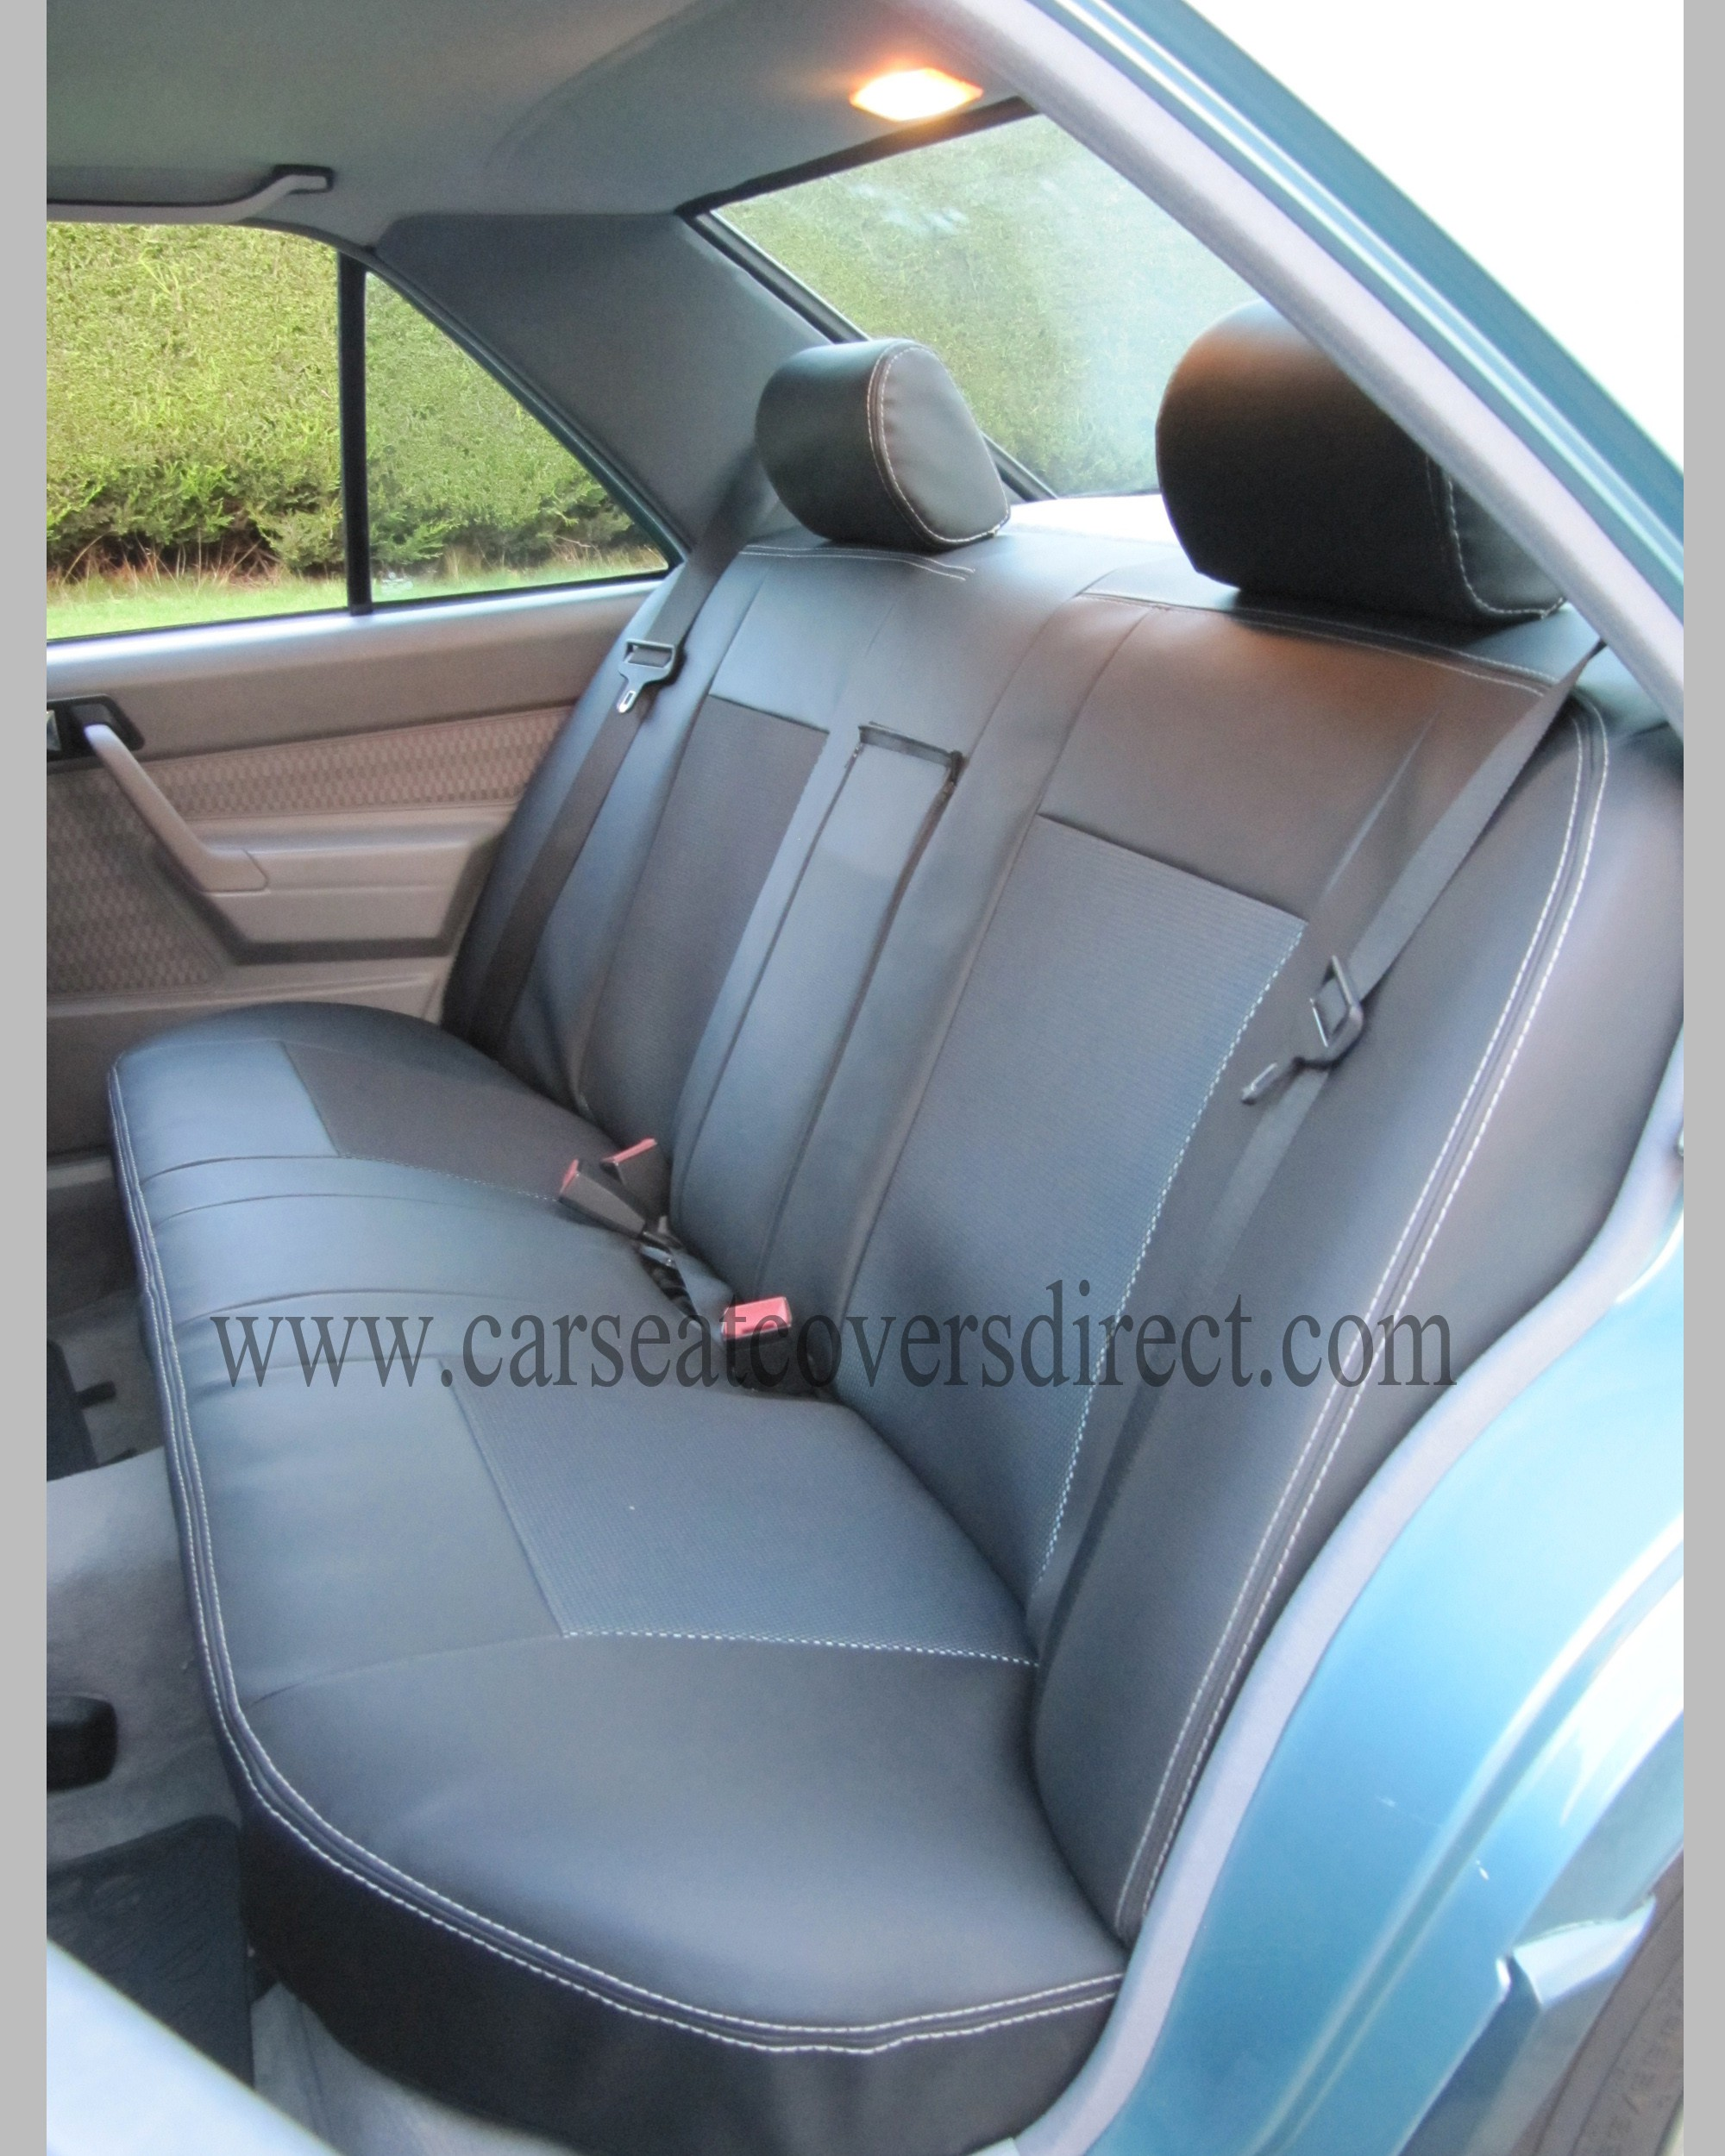 mercedes s class w126 seat covers car seat covers direct tailored to your choice. Black Bedroom Furniture Sets. Home Design Ideas